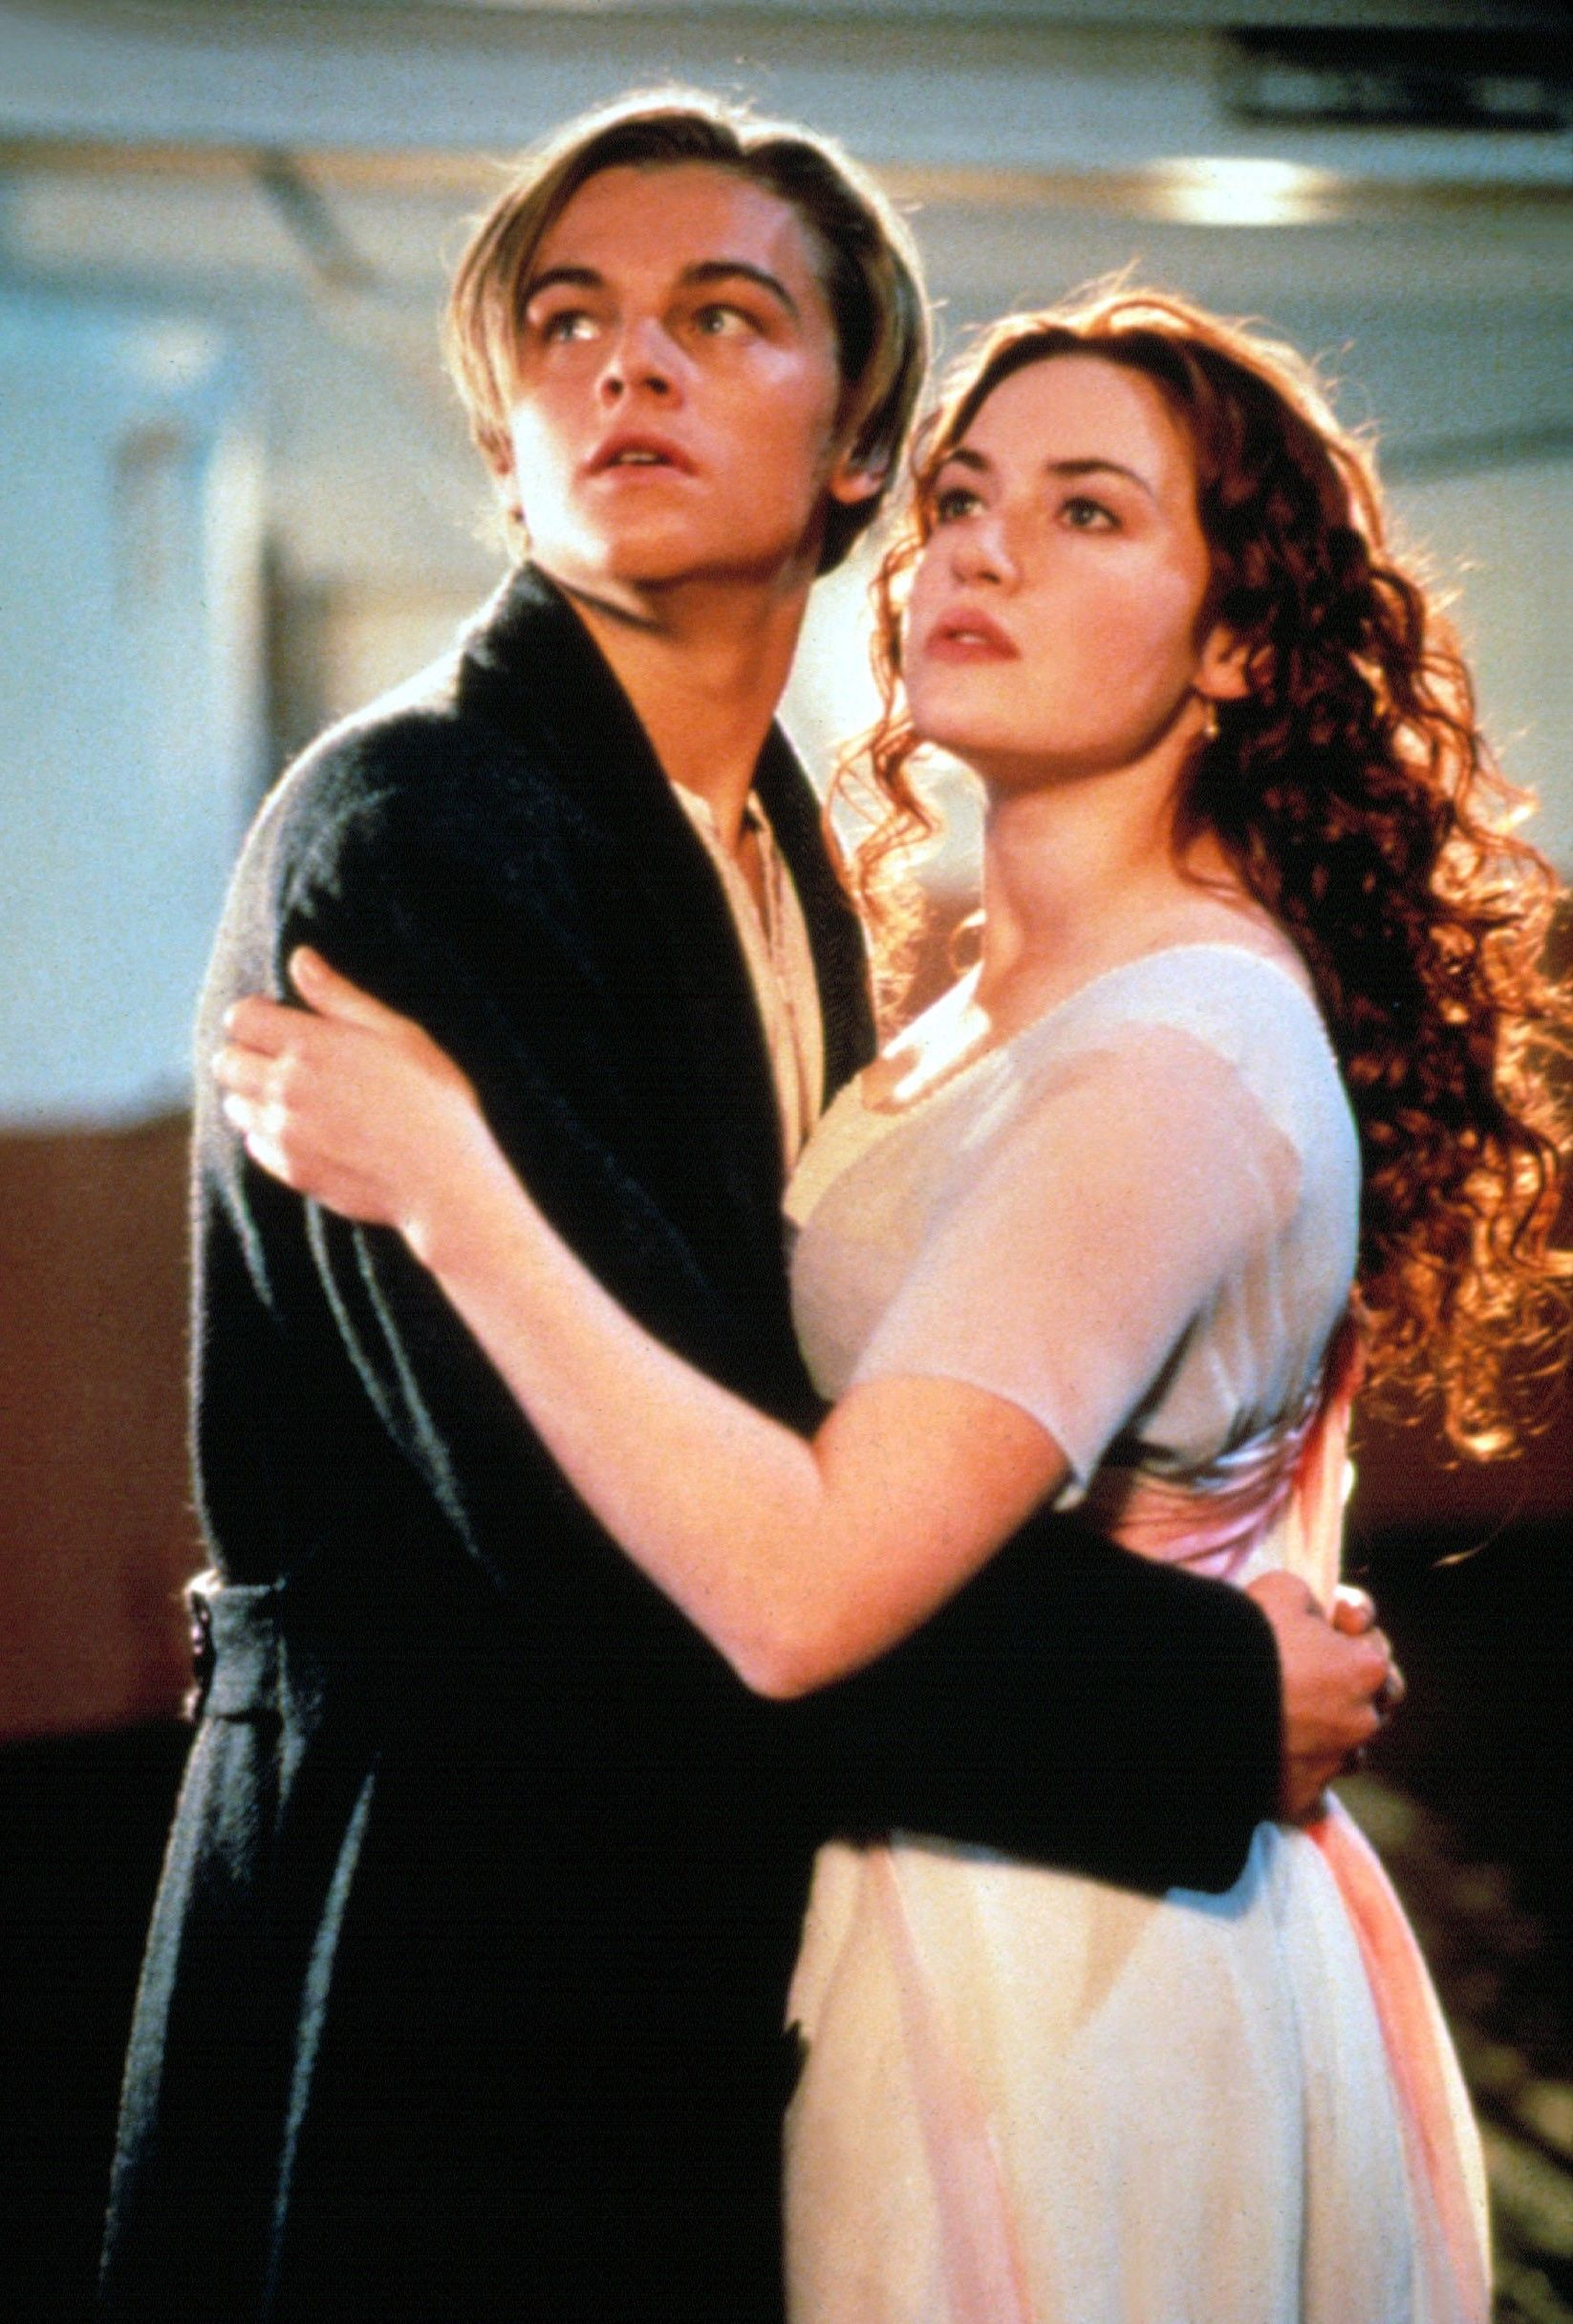 Titanic (1997) This movie, which had most teenage girls sobbing their way through the late '90s, is a fictionalized account of the 1912 sinking of the RMS Titanic (obviously). It stars Leonardo DiCaprio at his heartthrob-iest and Kate Winslet, two passengers of vastly different social stature who fall in love during the Titanic's first and final voyage.